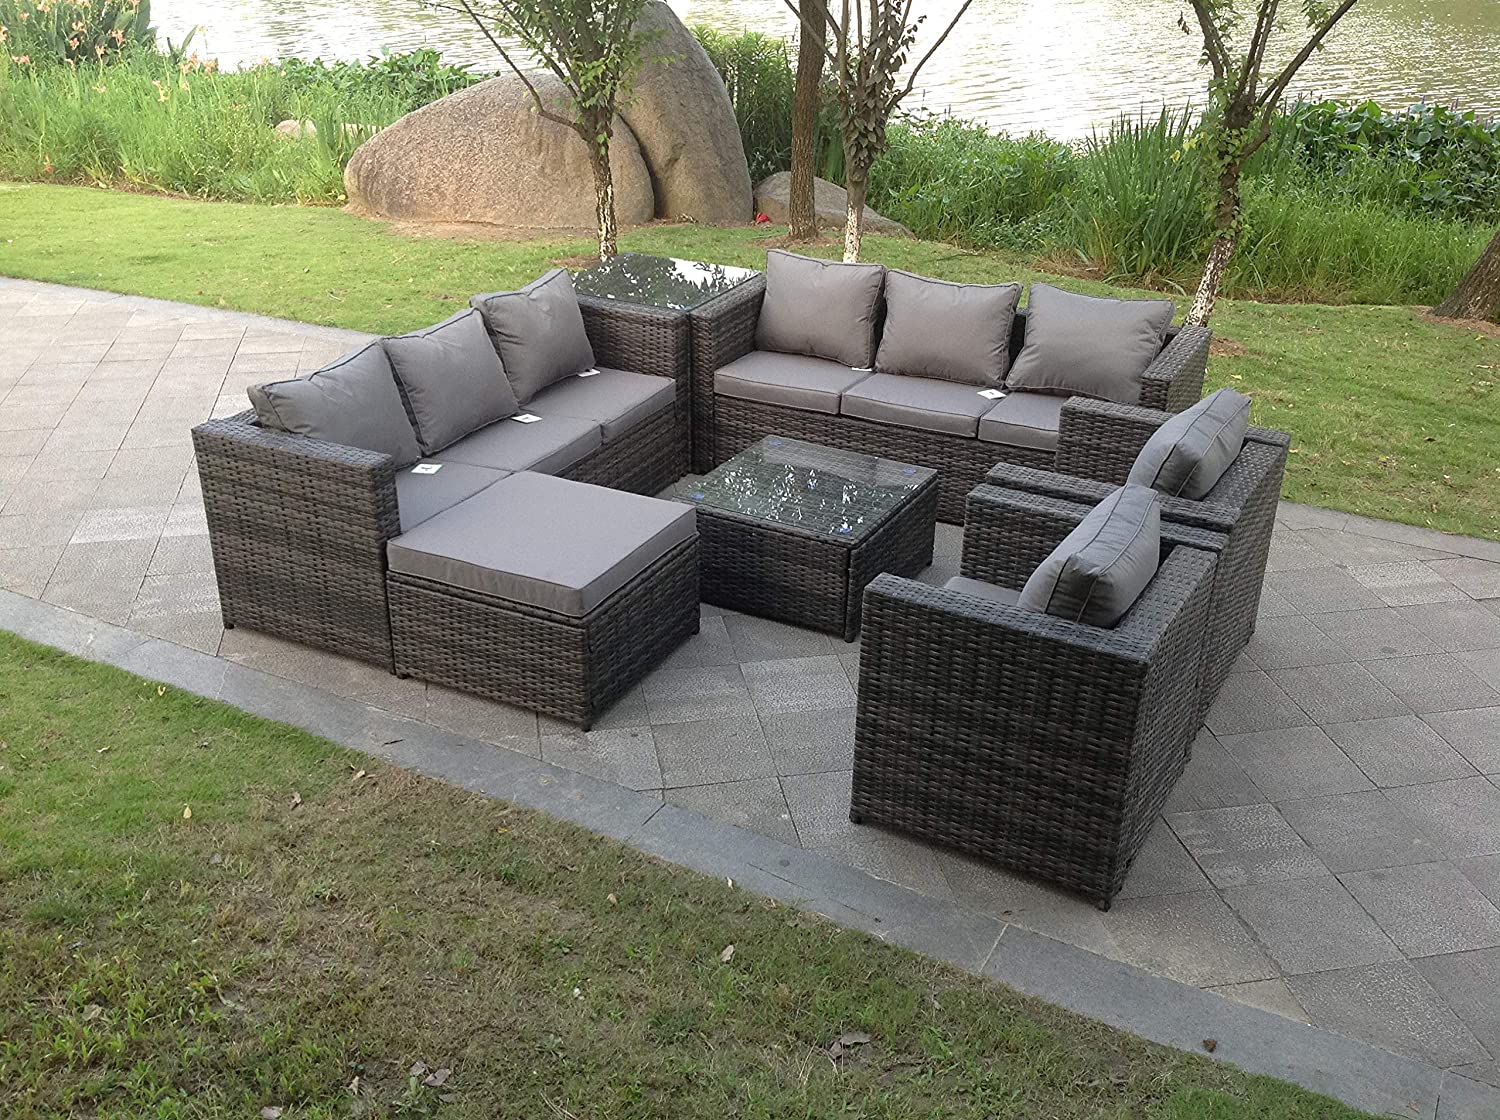 Fimous 9 Seater Grey Rattan Corner Sofa Set Dining Table Foot Rest Garden Furniture Outdoor Amazon Co Uk Kitchen Home